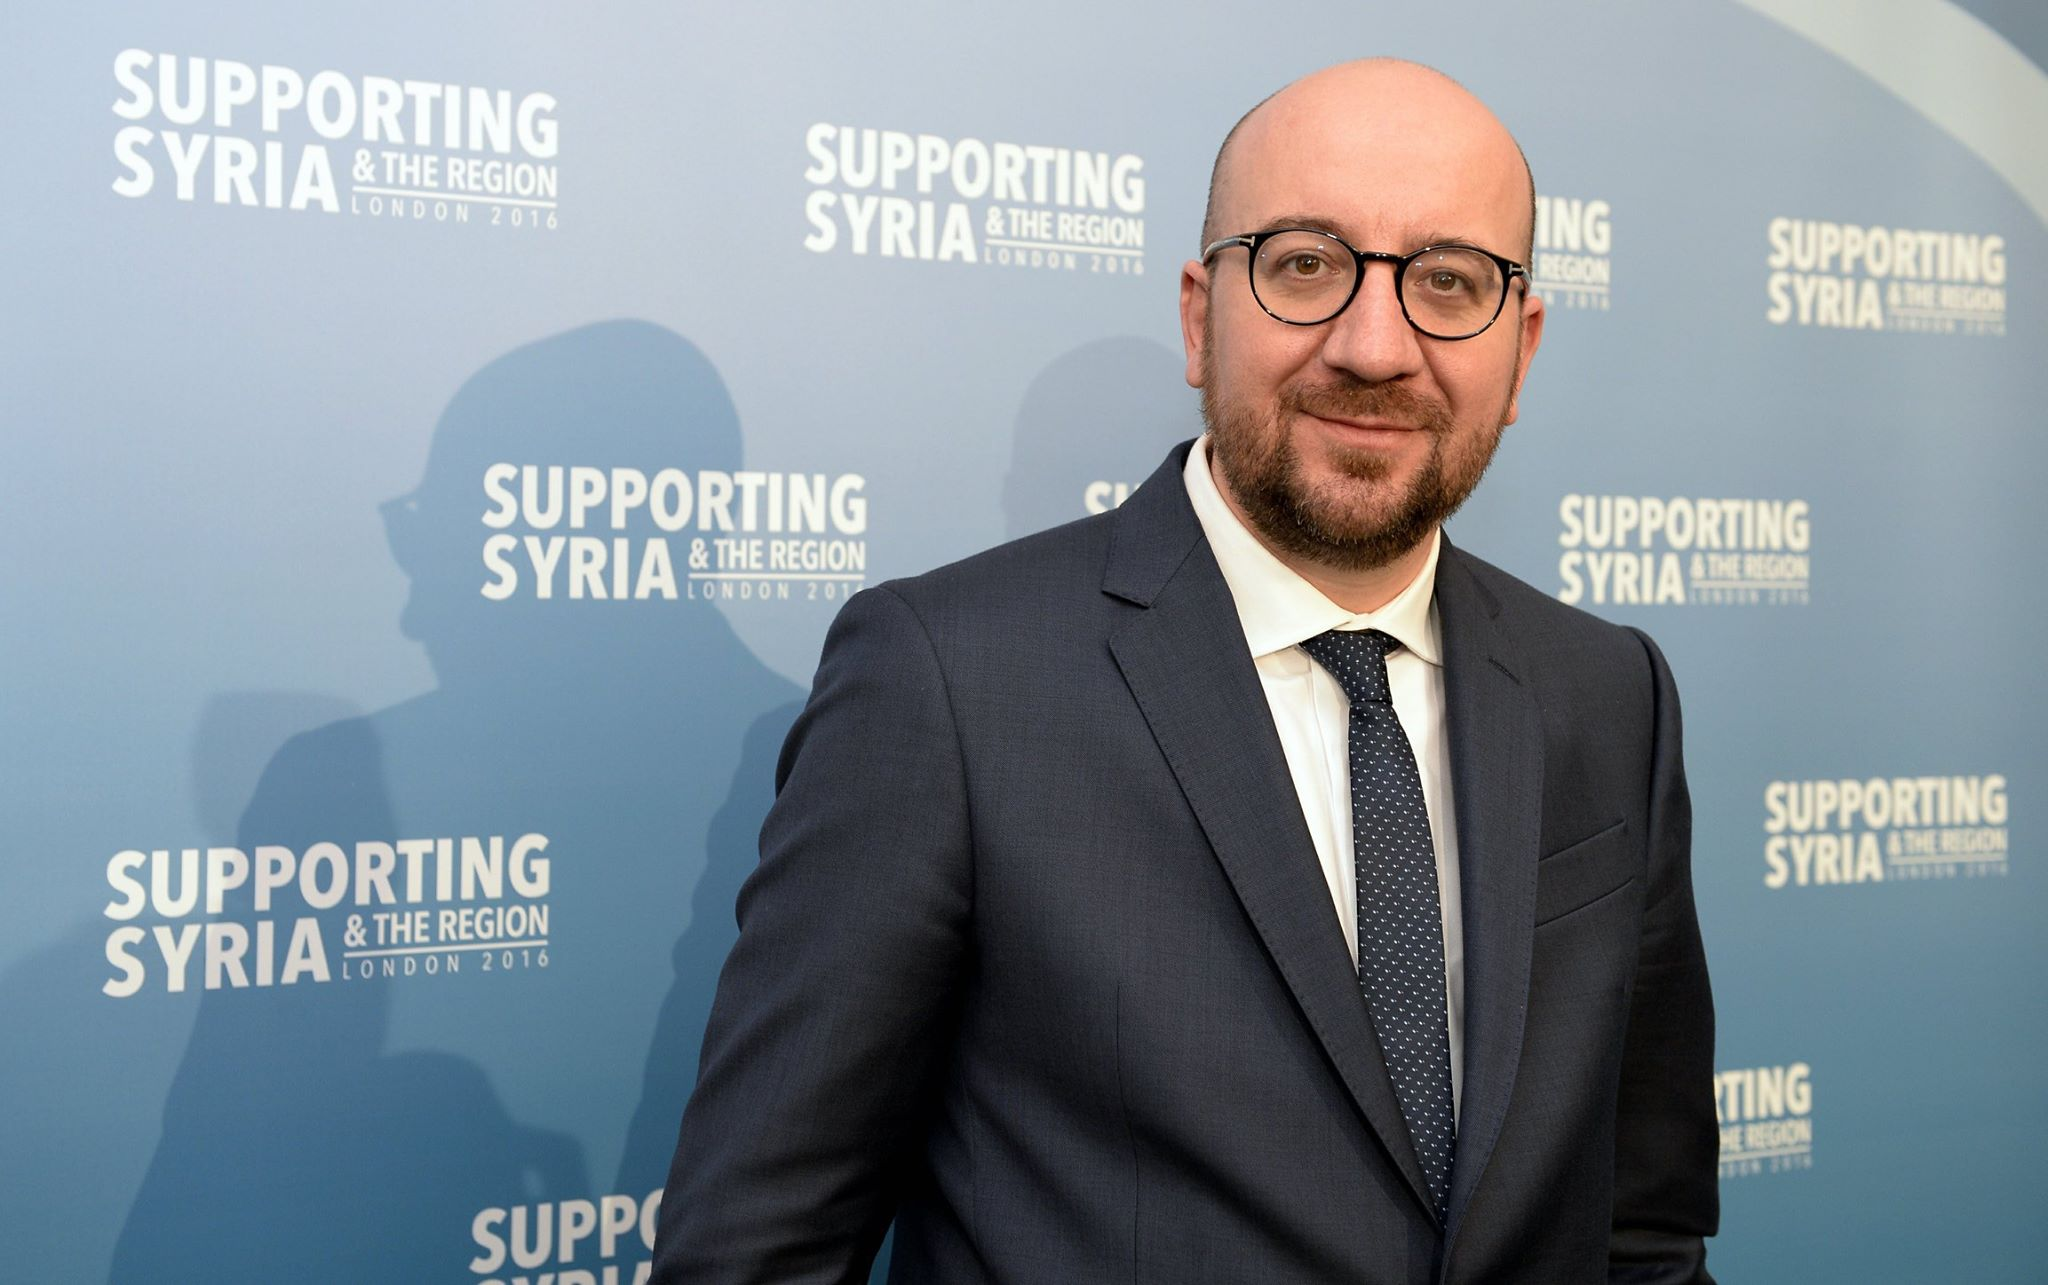 Belgian prime minister Charles Michel, in happier times, at a pro-refugee event earlier this year. (Facebook)